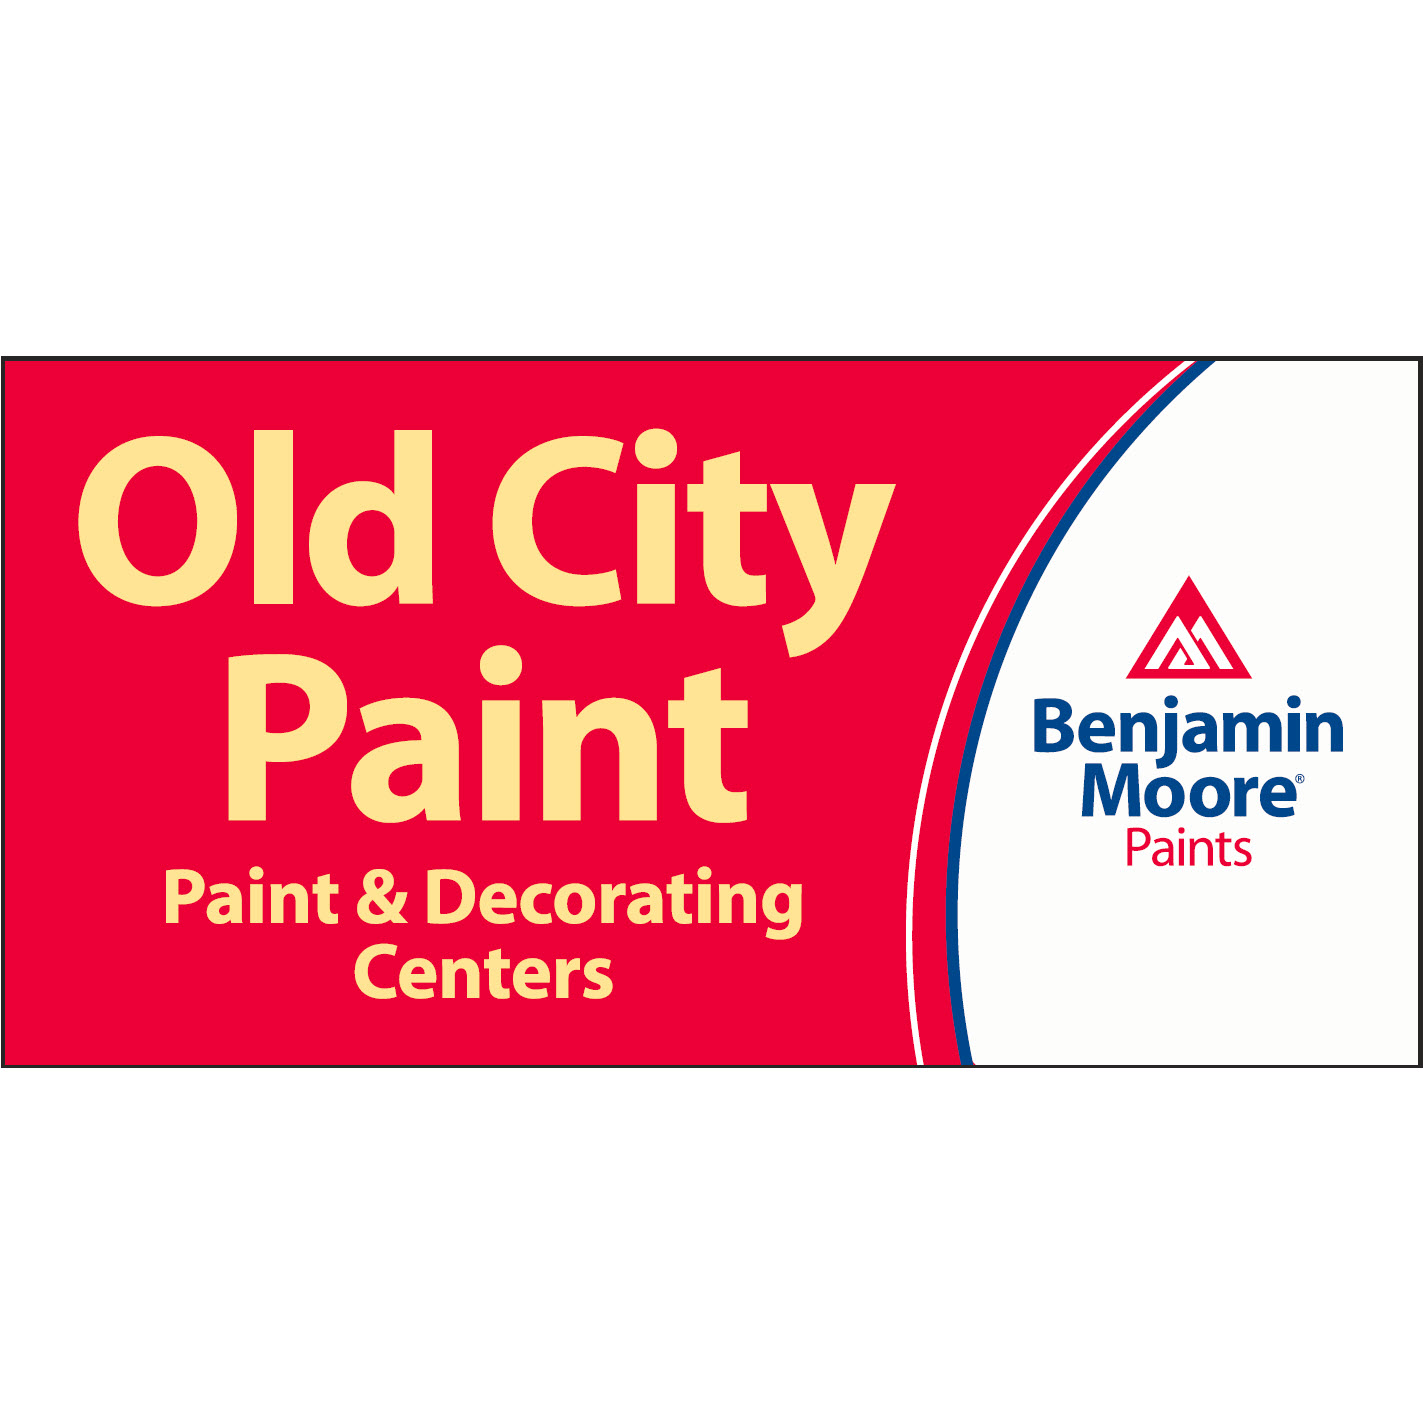 Old City Paint & Decorating